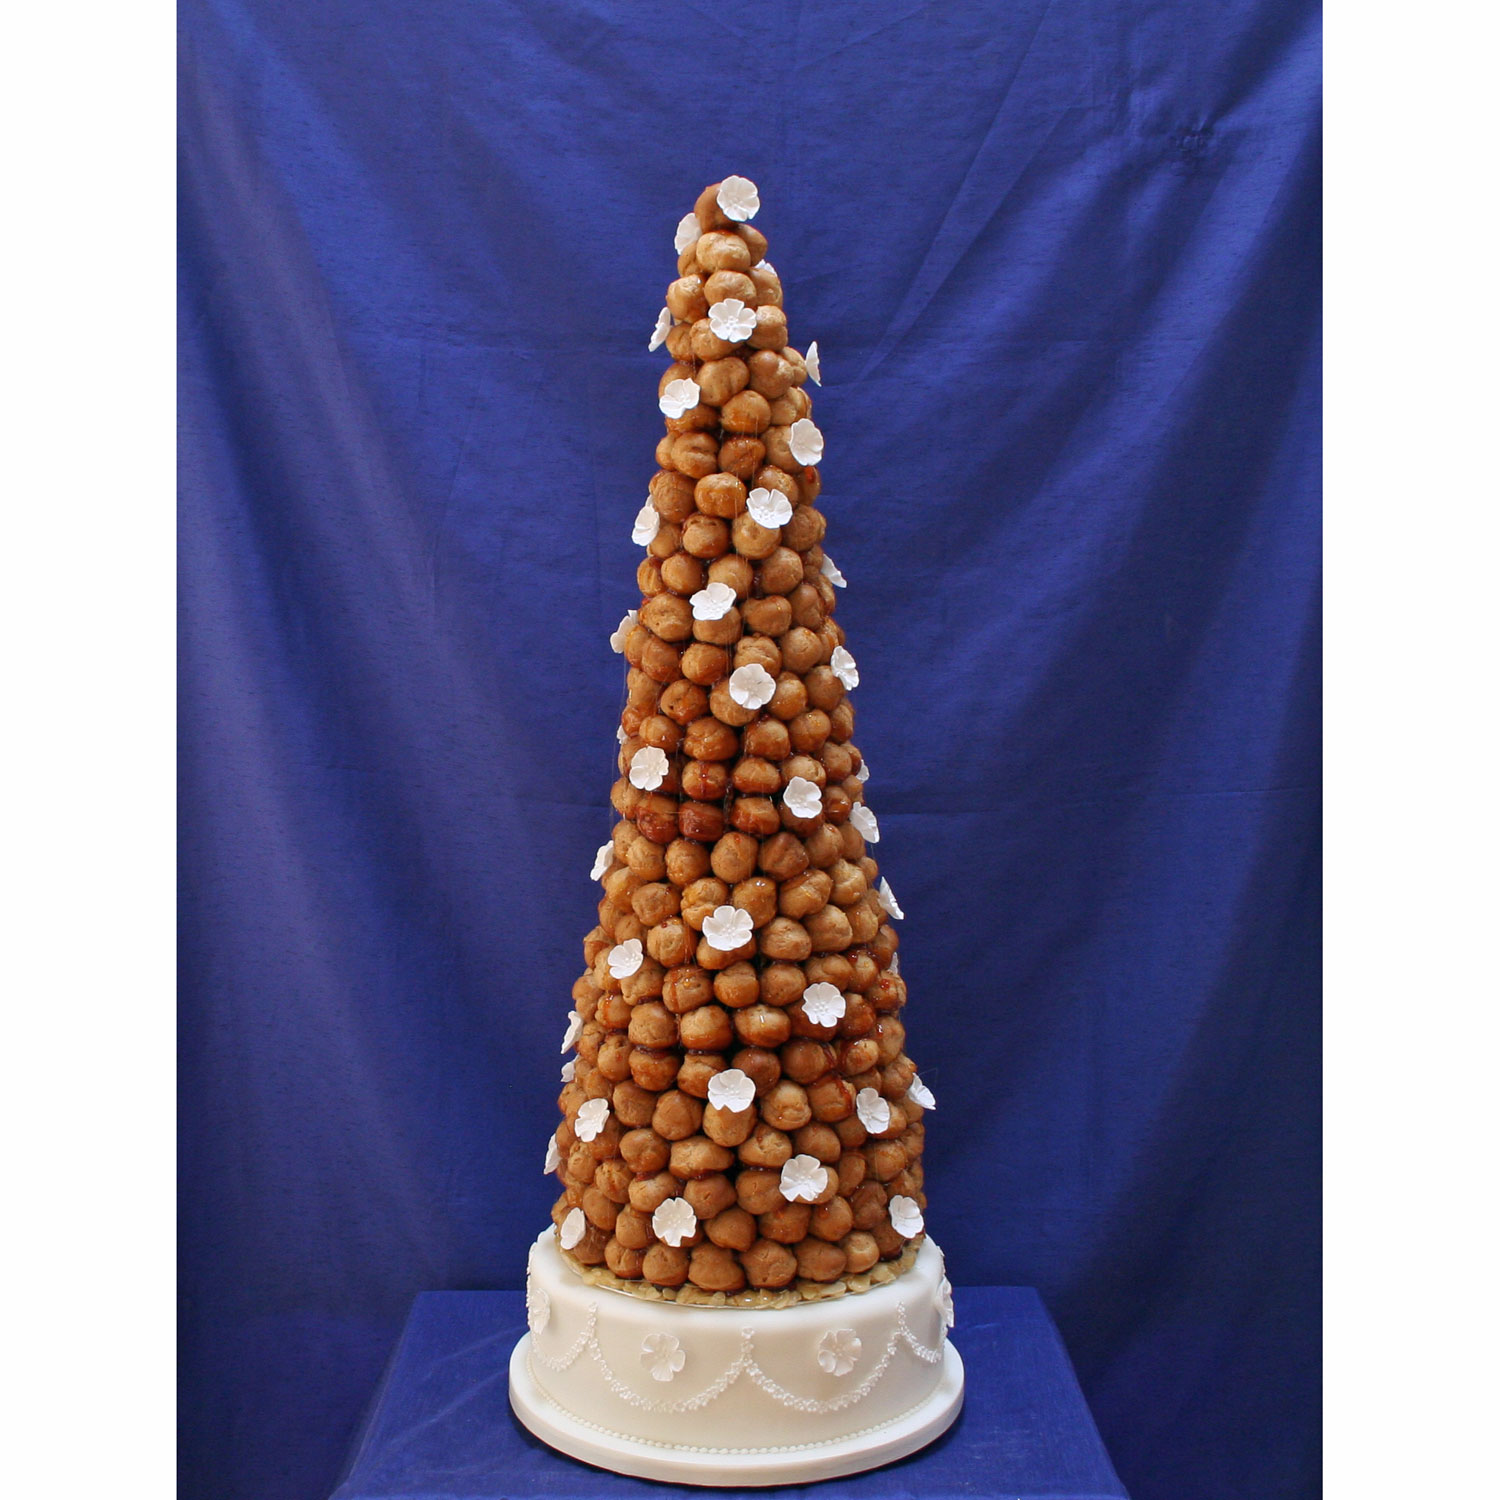 Croquembouche Decorated with White Sugar Blossoms